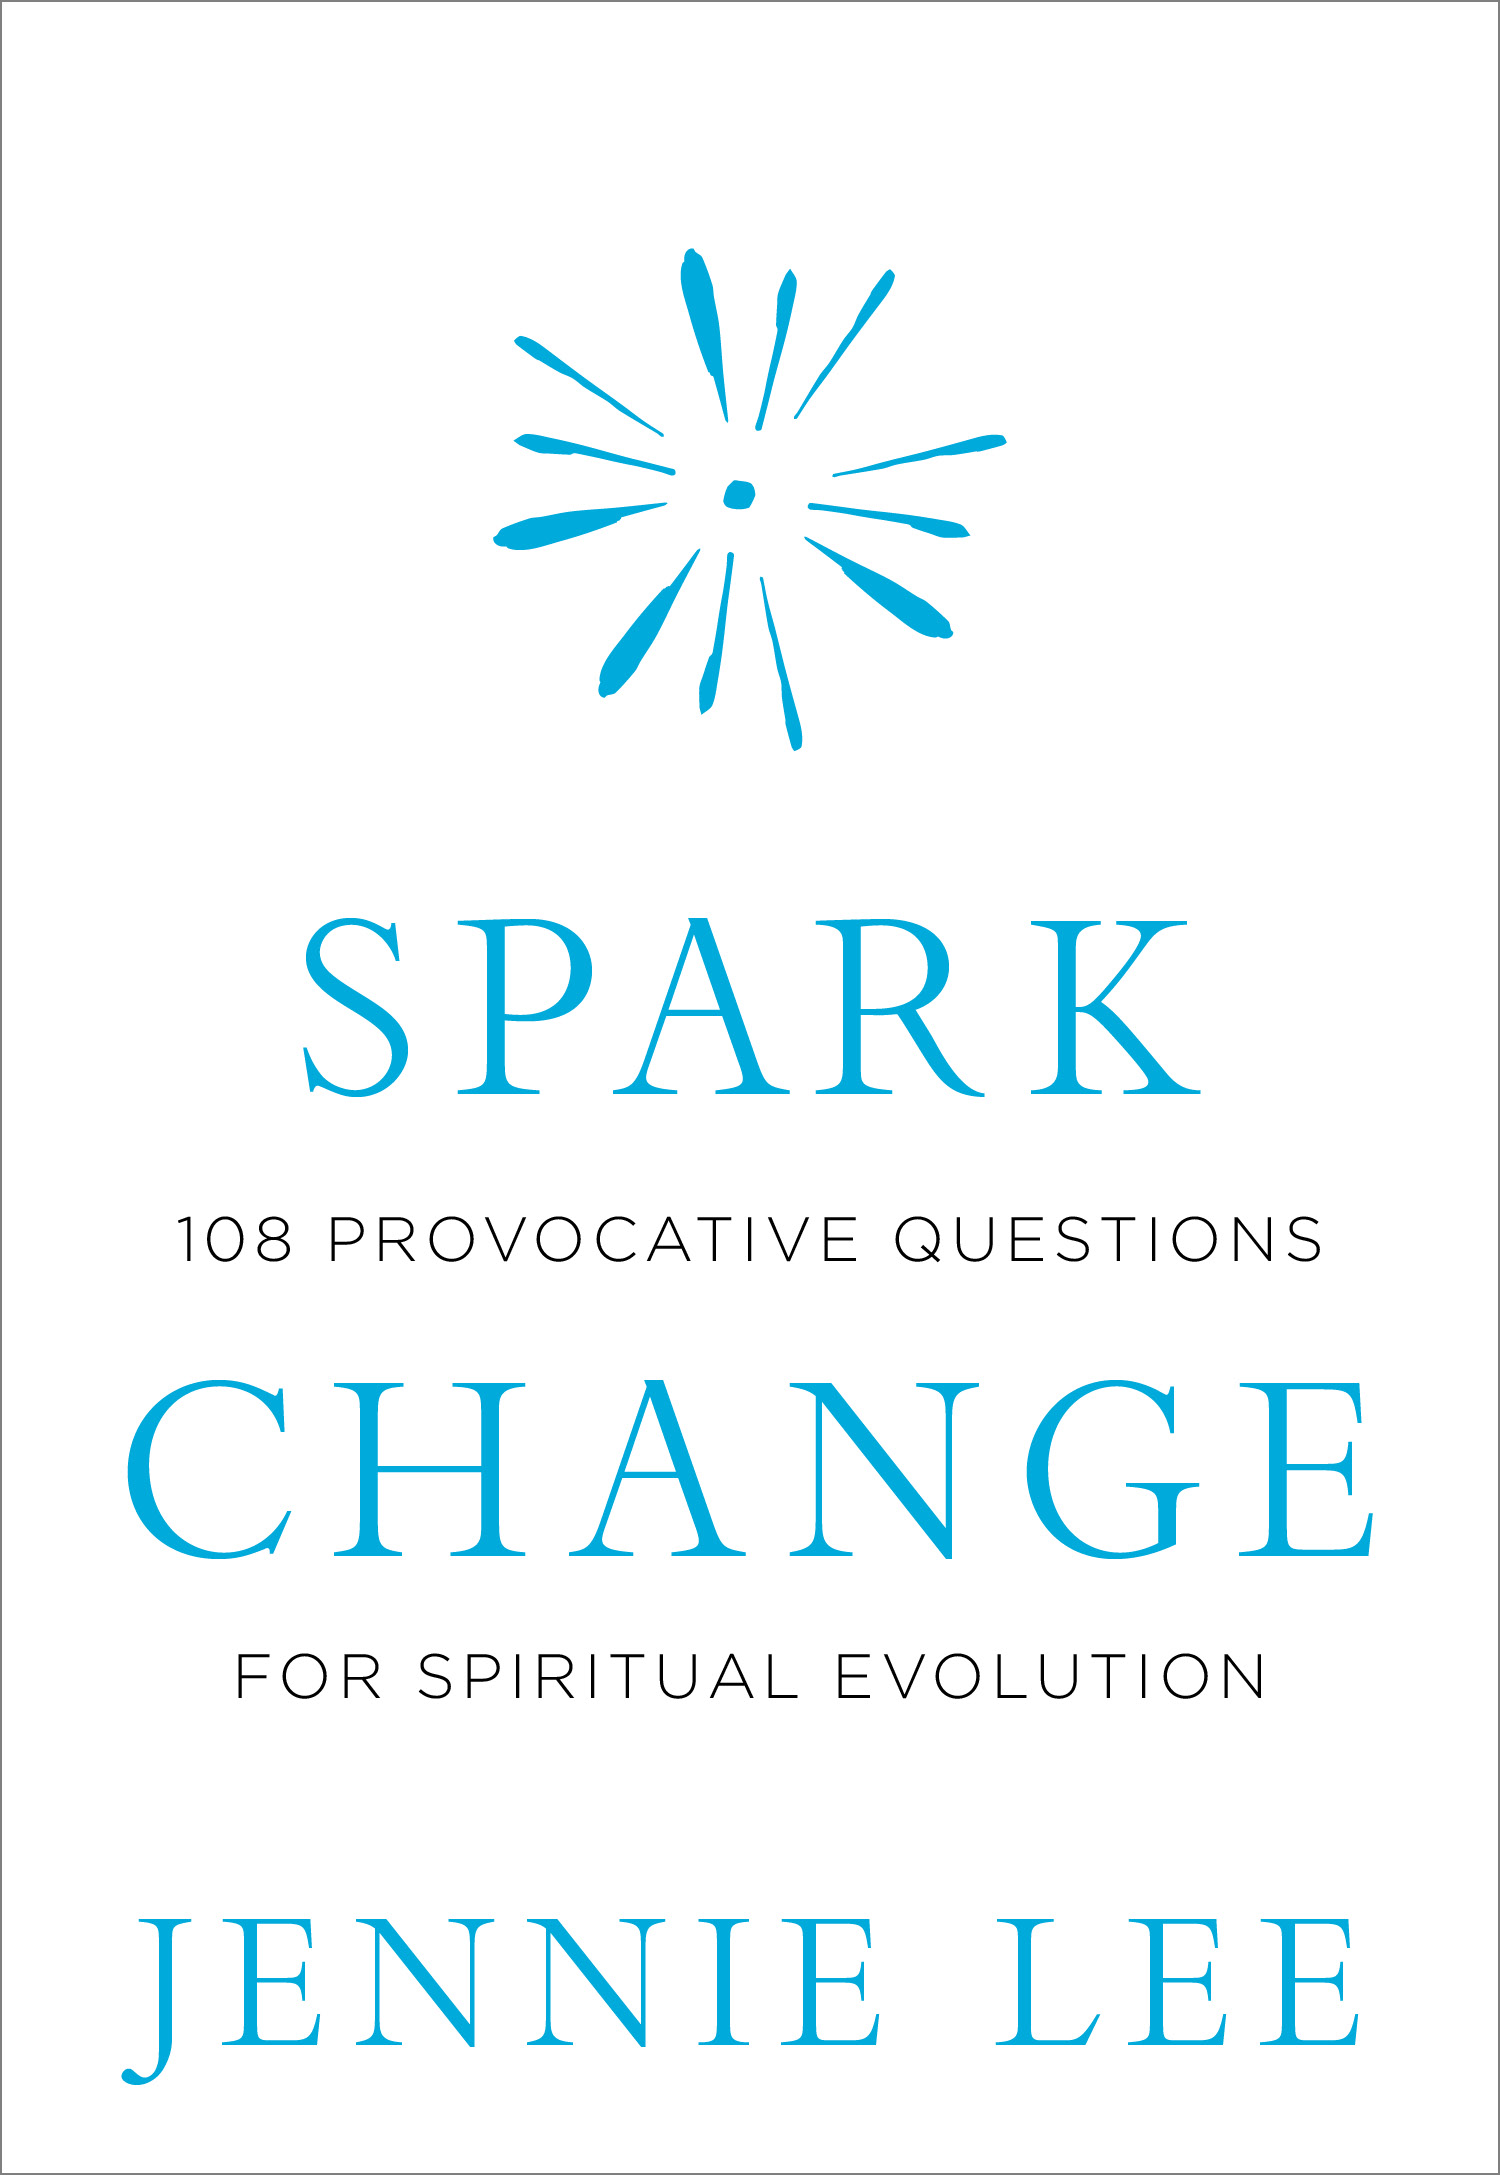 Spark Change  108 Provocative questions for spiritual evolution. Jennie Lee